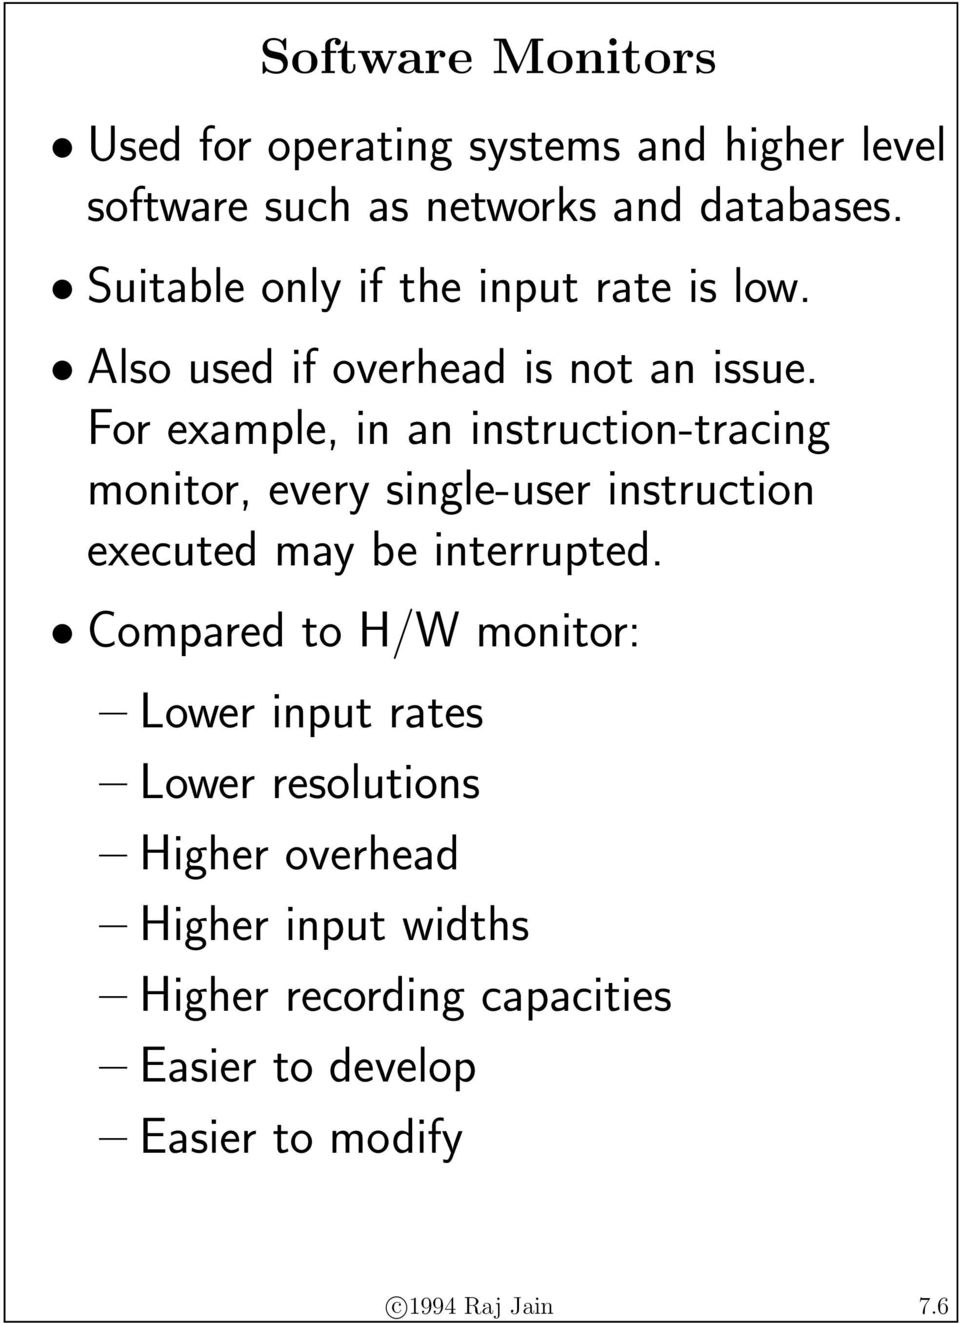 For example, in an instruction-tracing monitor, every single-user instruction executed may be interrupted.